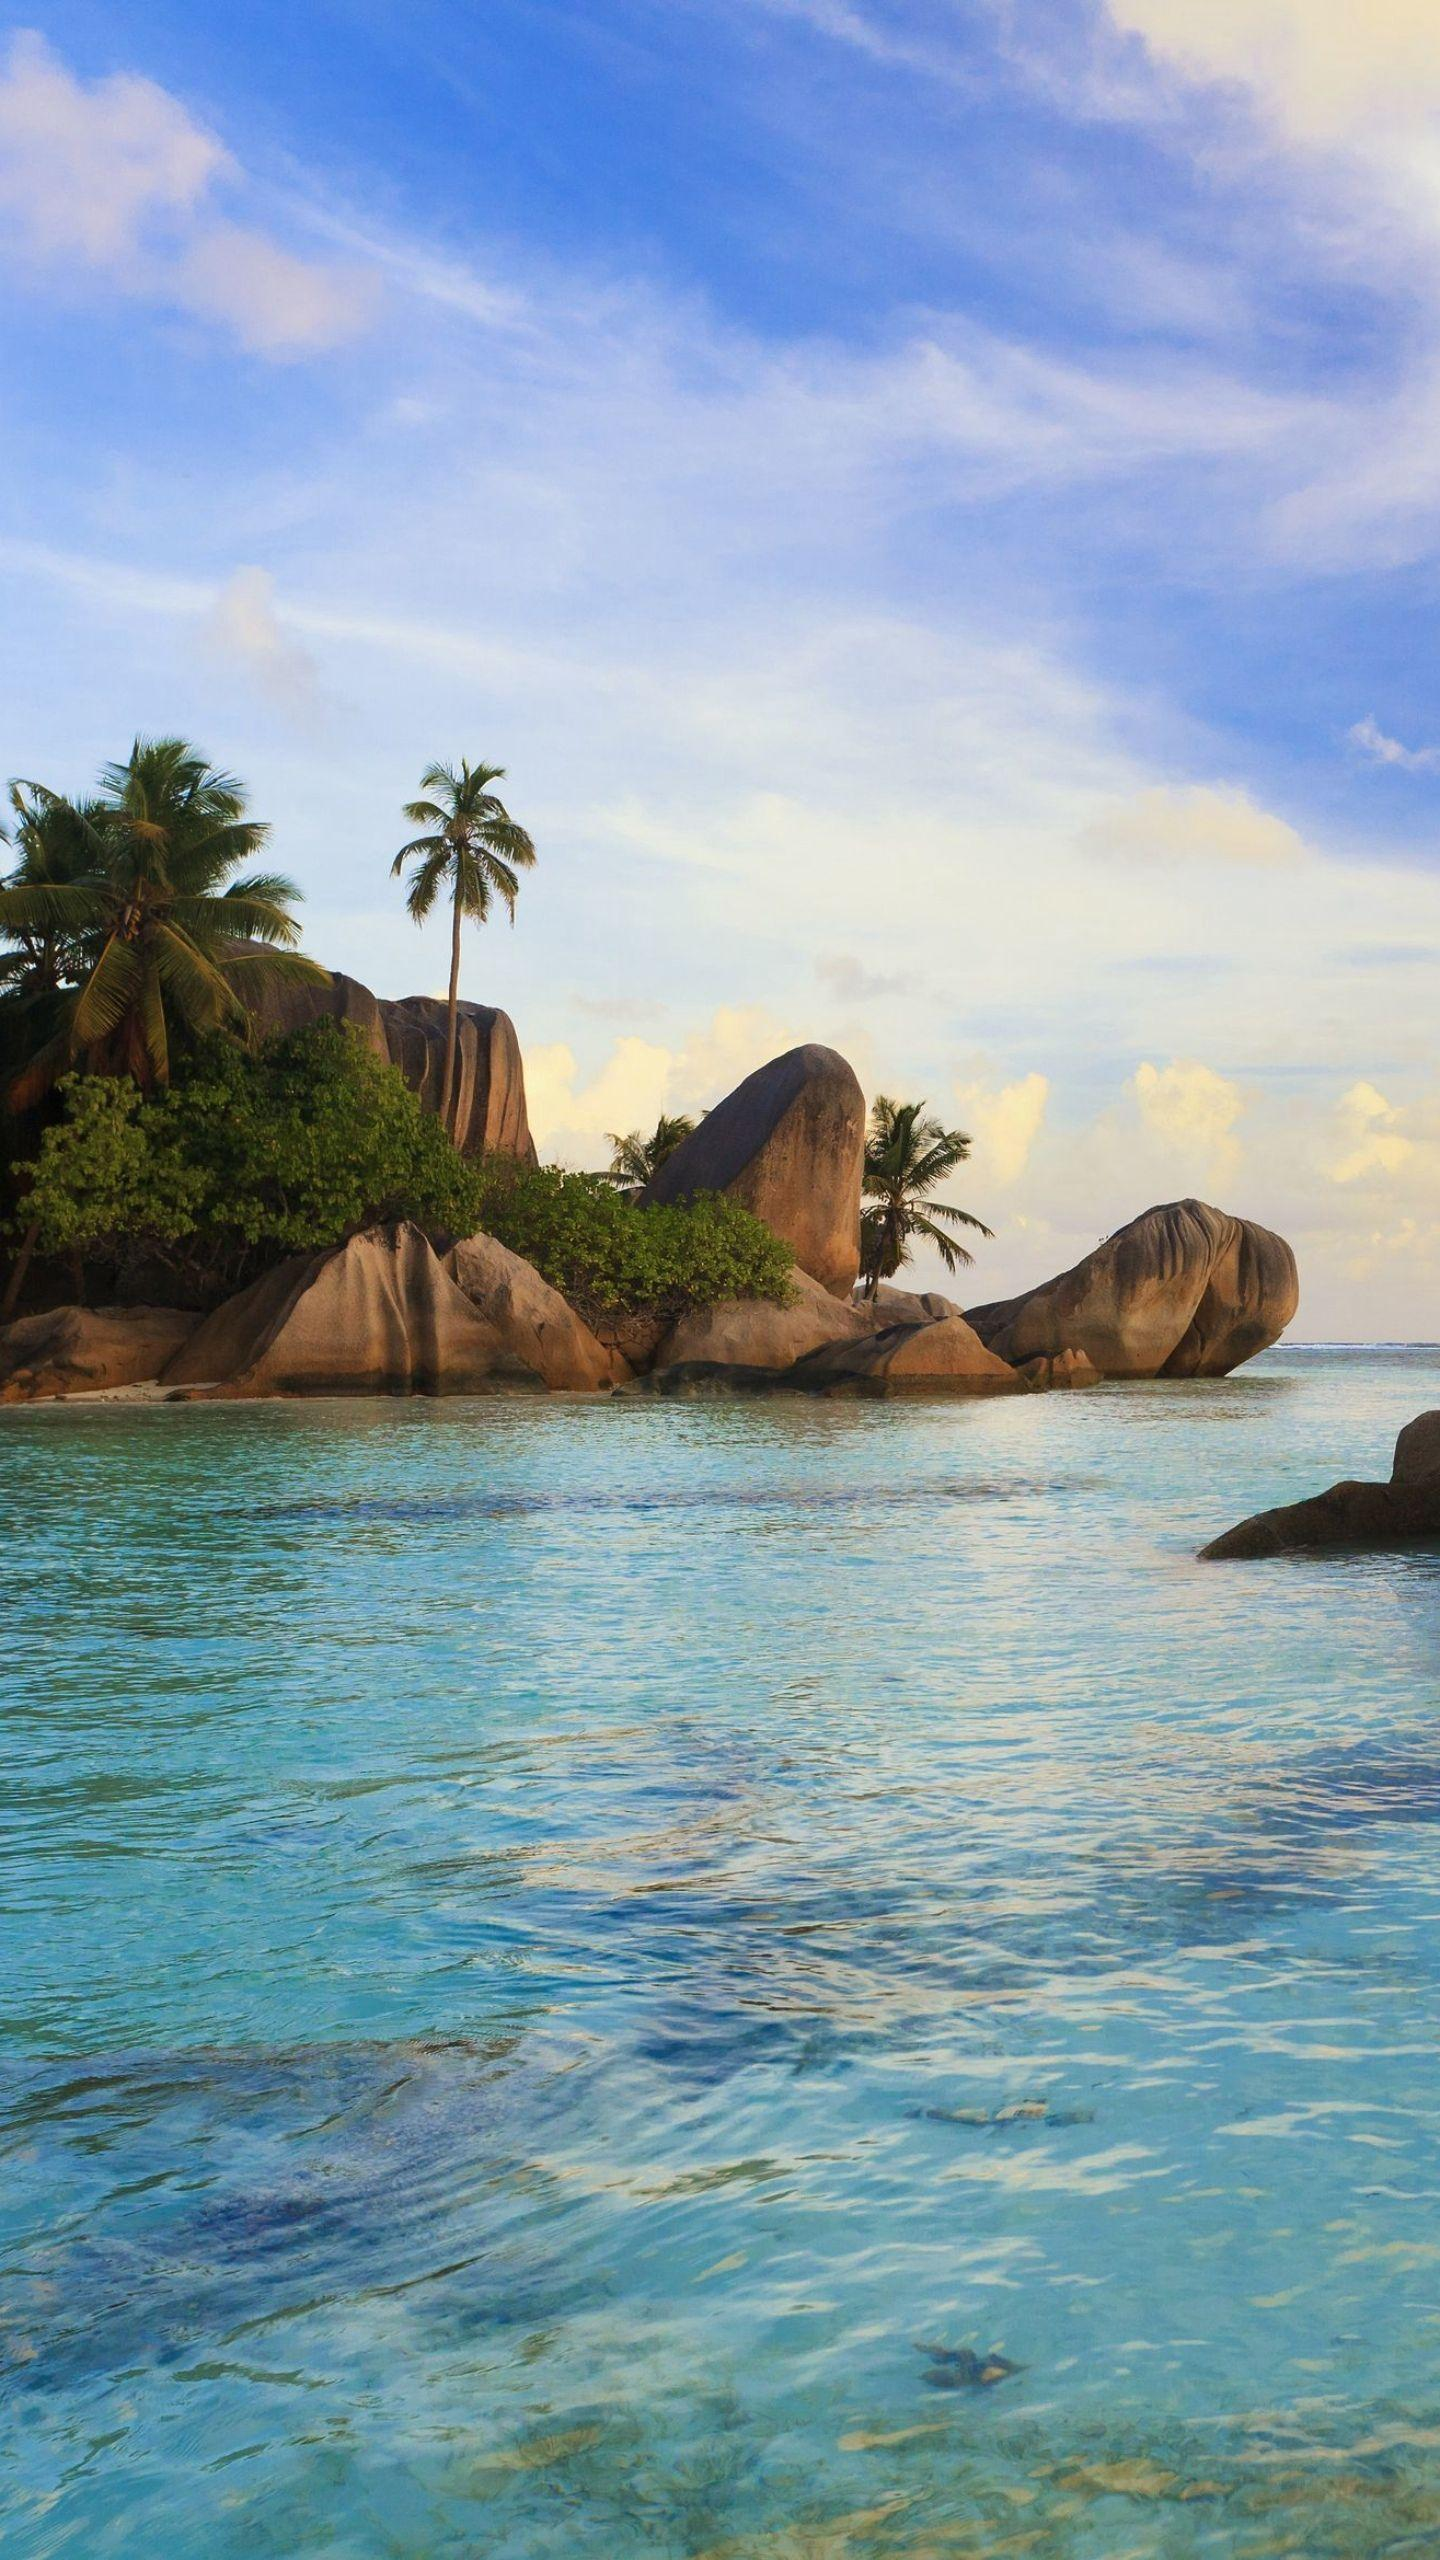 The beauty of Seychelles. Seychelles was listed by <<Lonely Planet>> as one of the 50 destinations that must go for a lifetime. It is also the honeymoon of Kate and William.